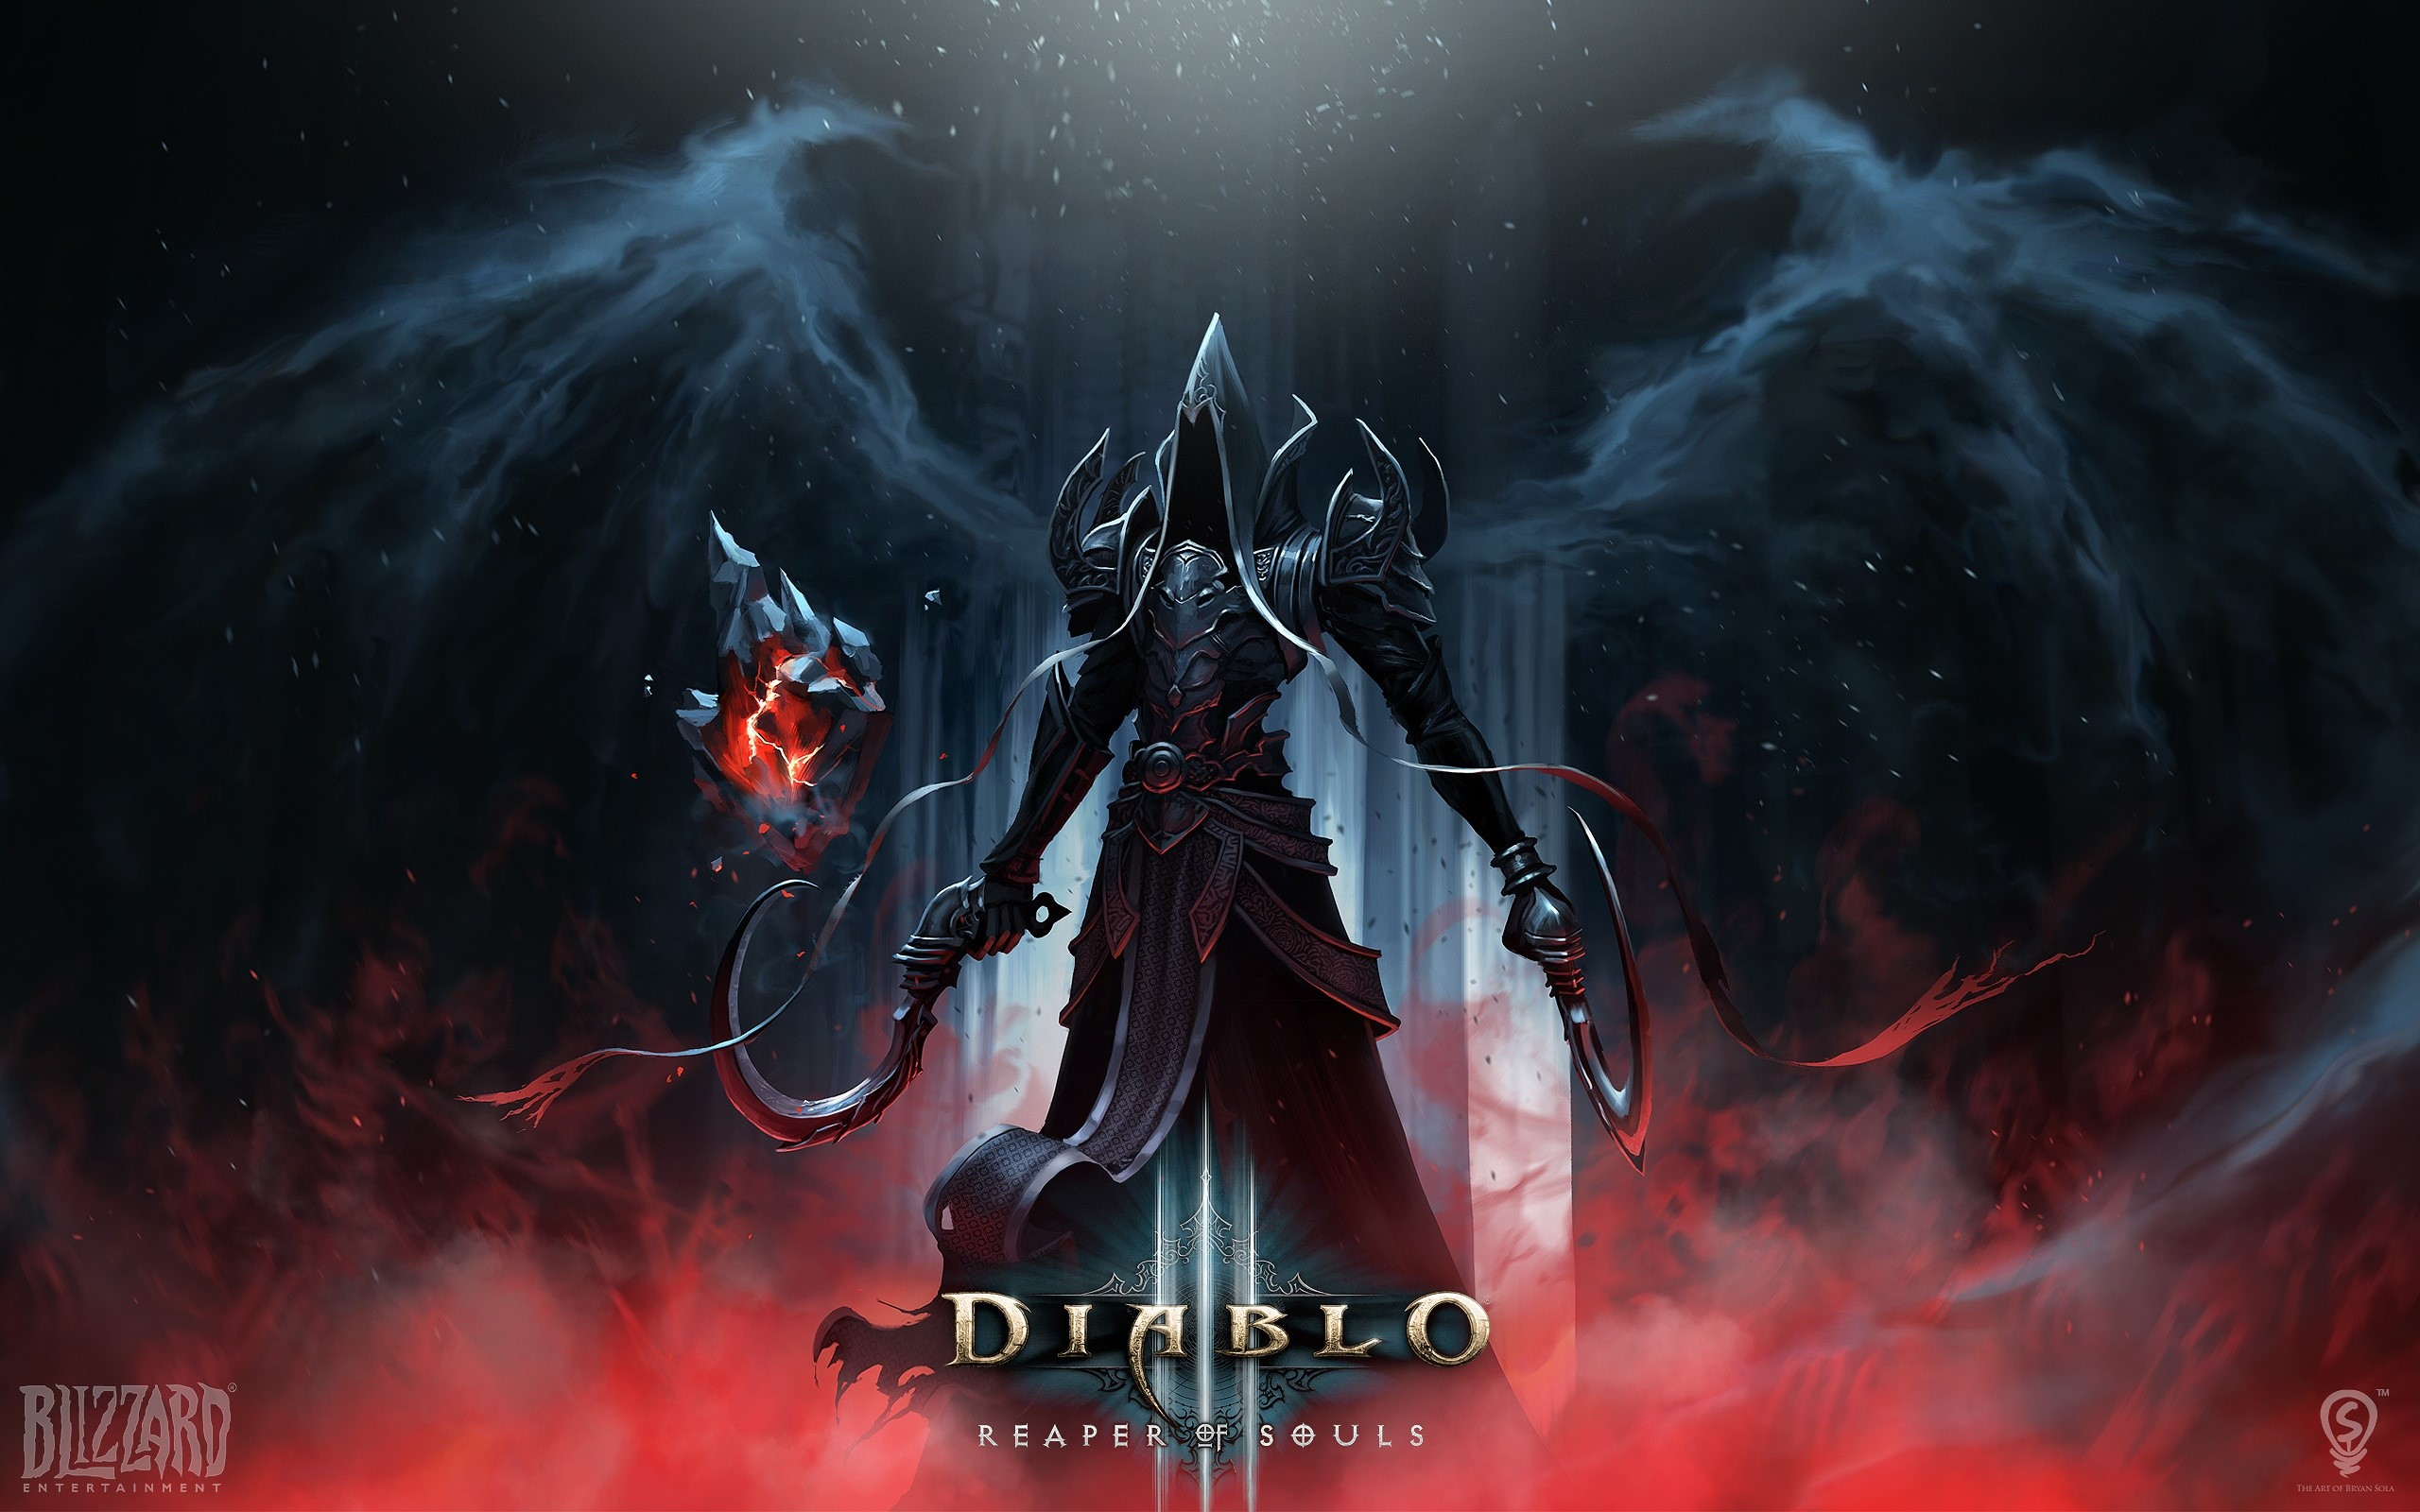 Wallpaper Diablo 3 Reaper of souls